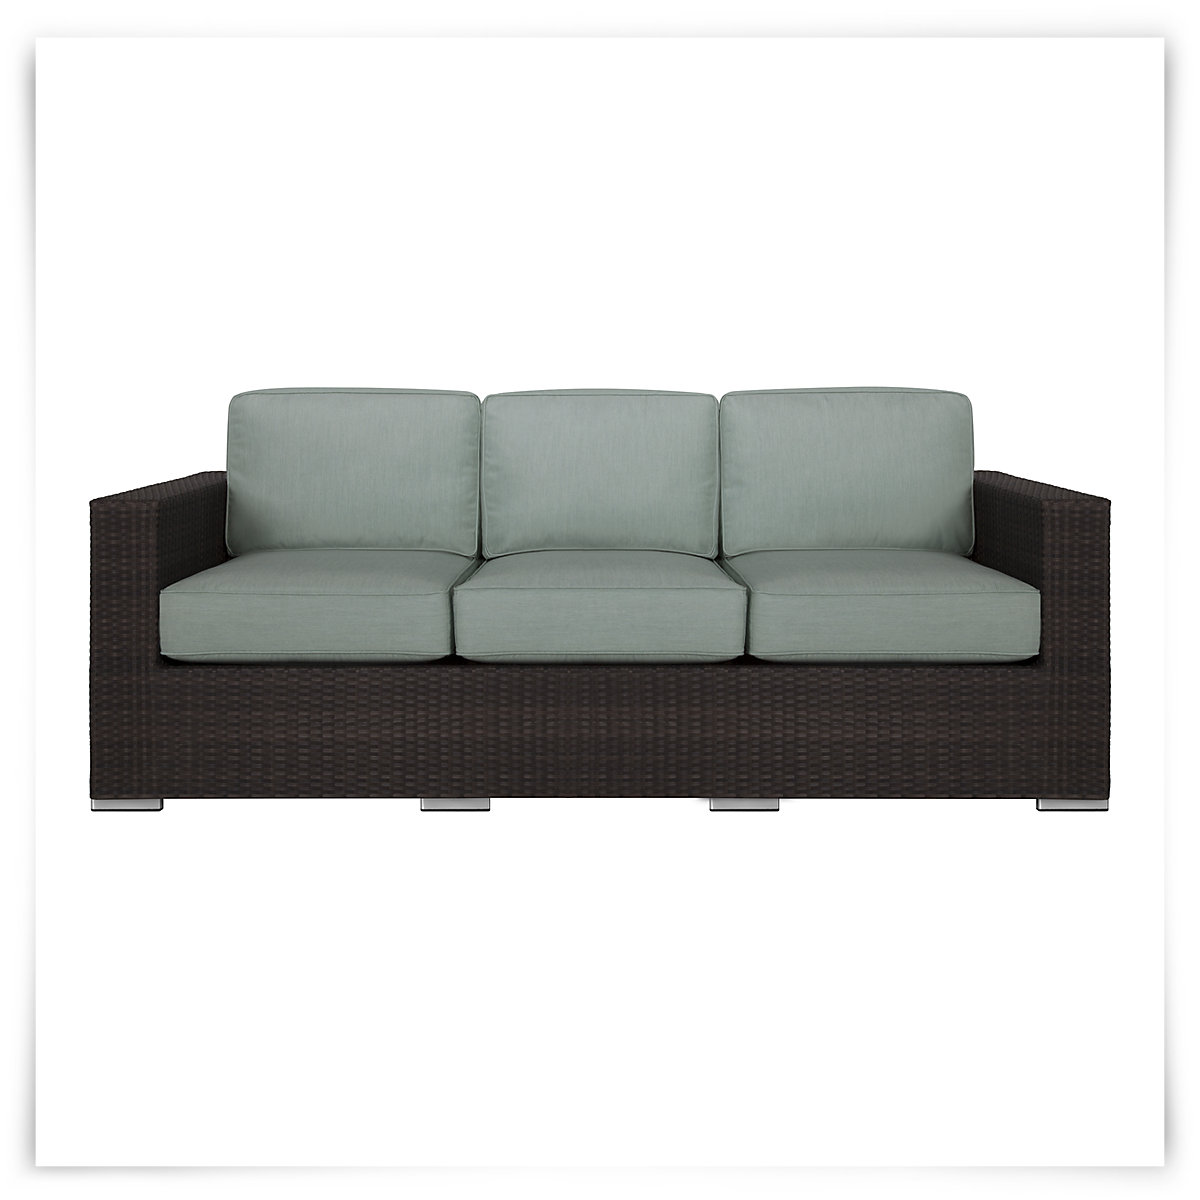 City Furniture Fina Teal Sofa